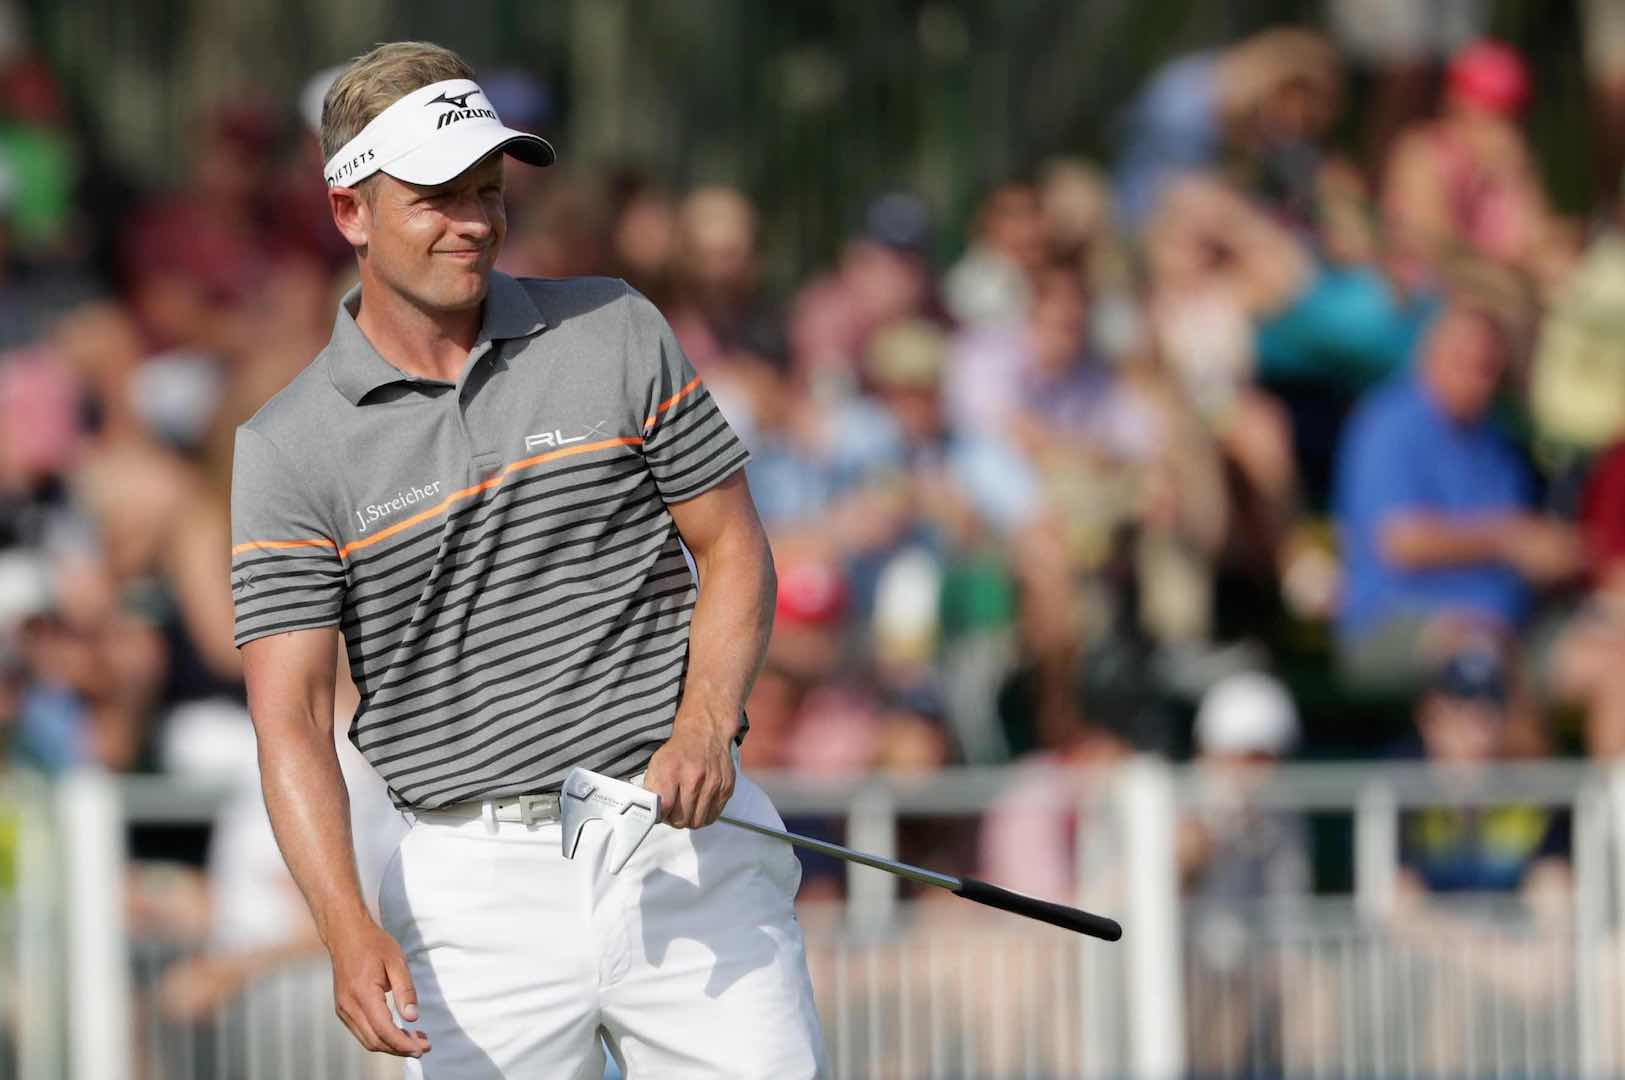 Jason Dufner takes solo lead at RBC Heritage